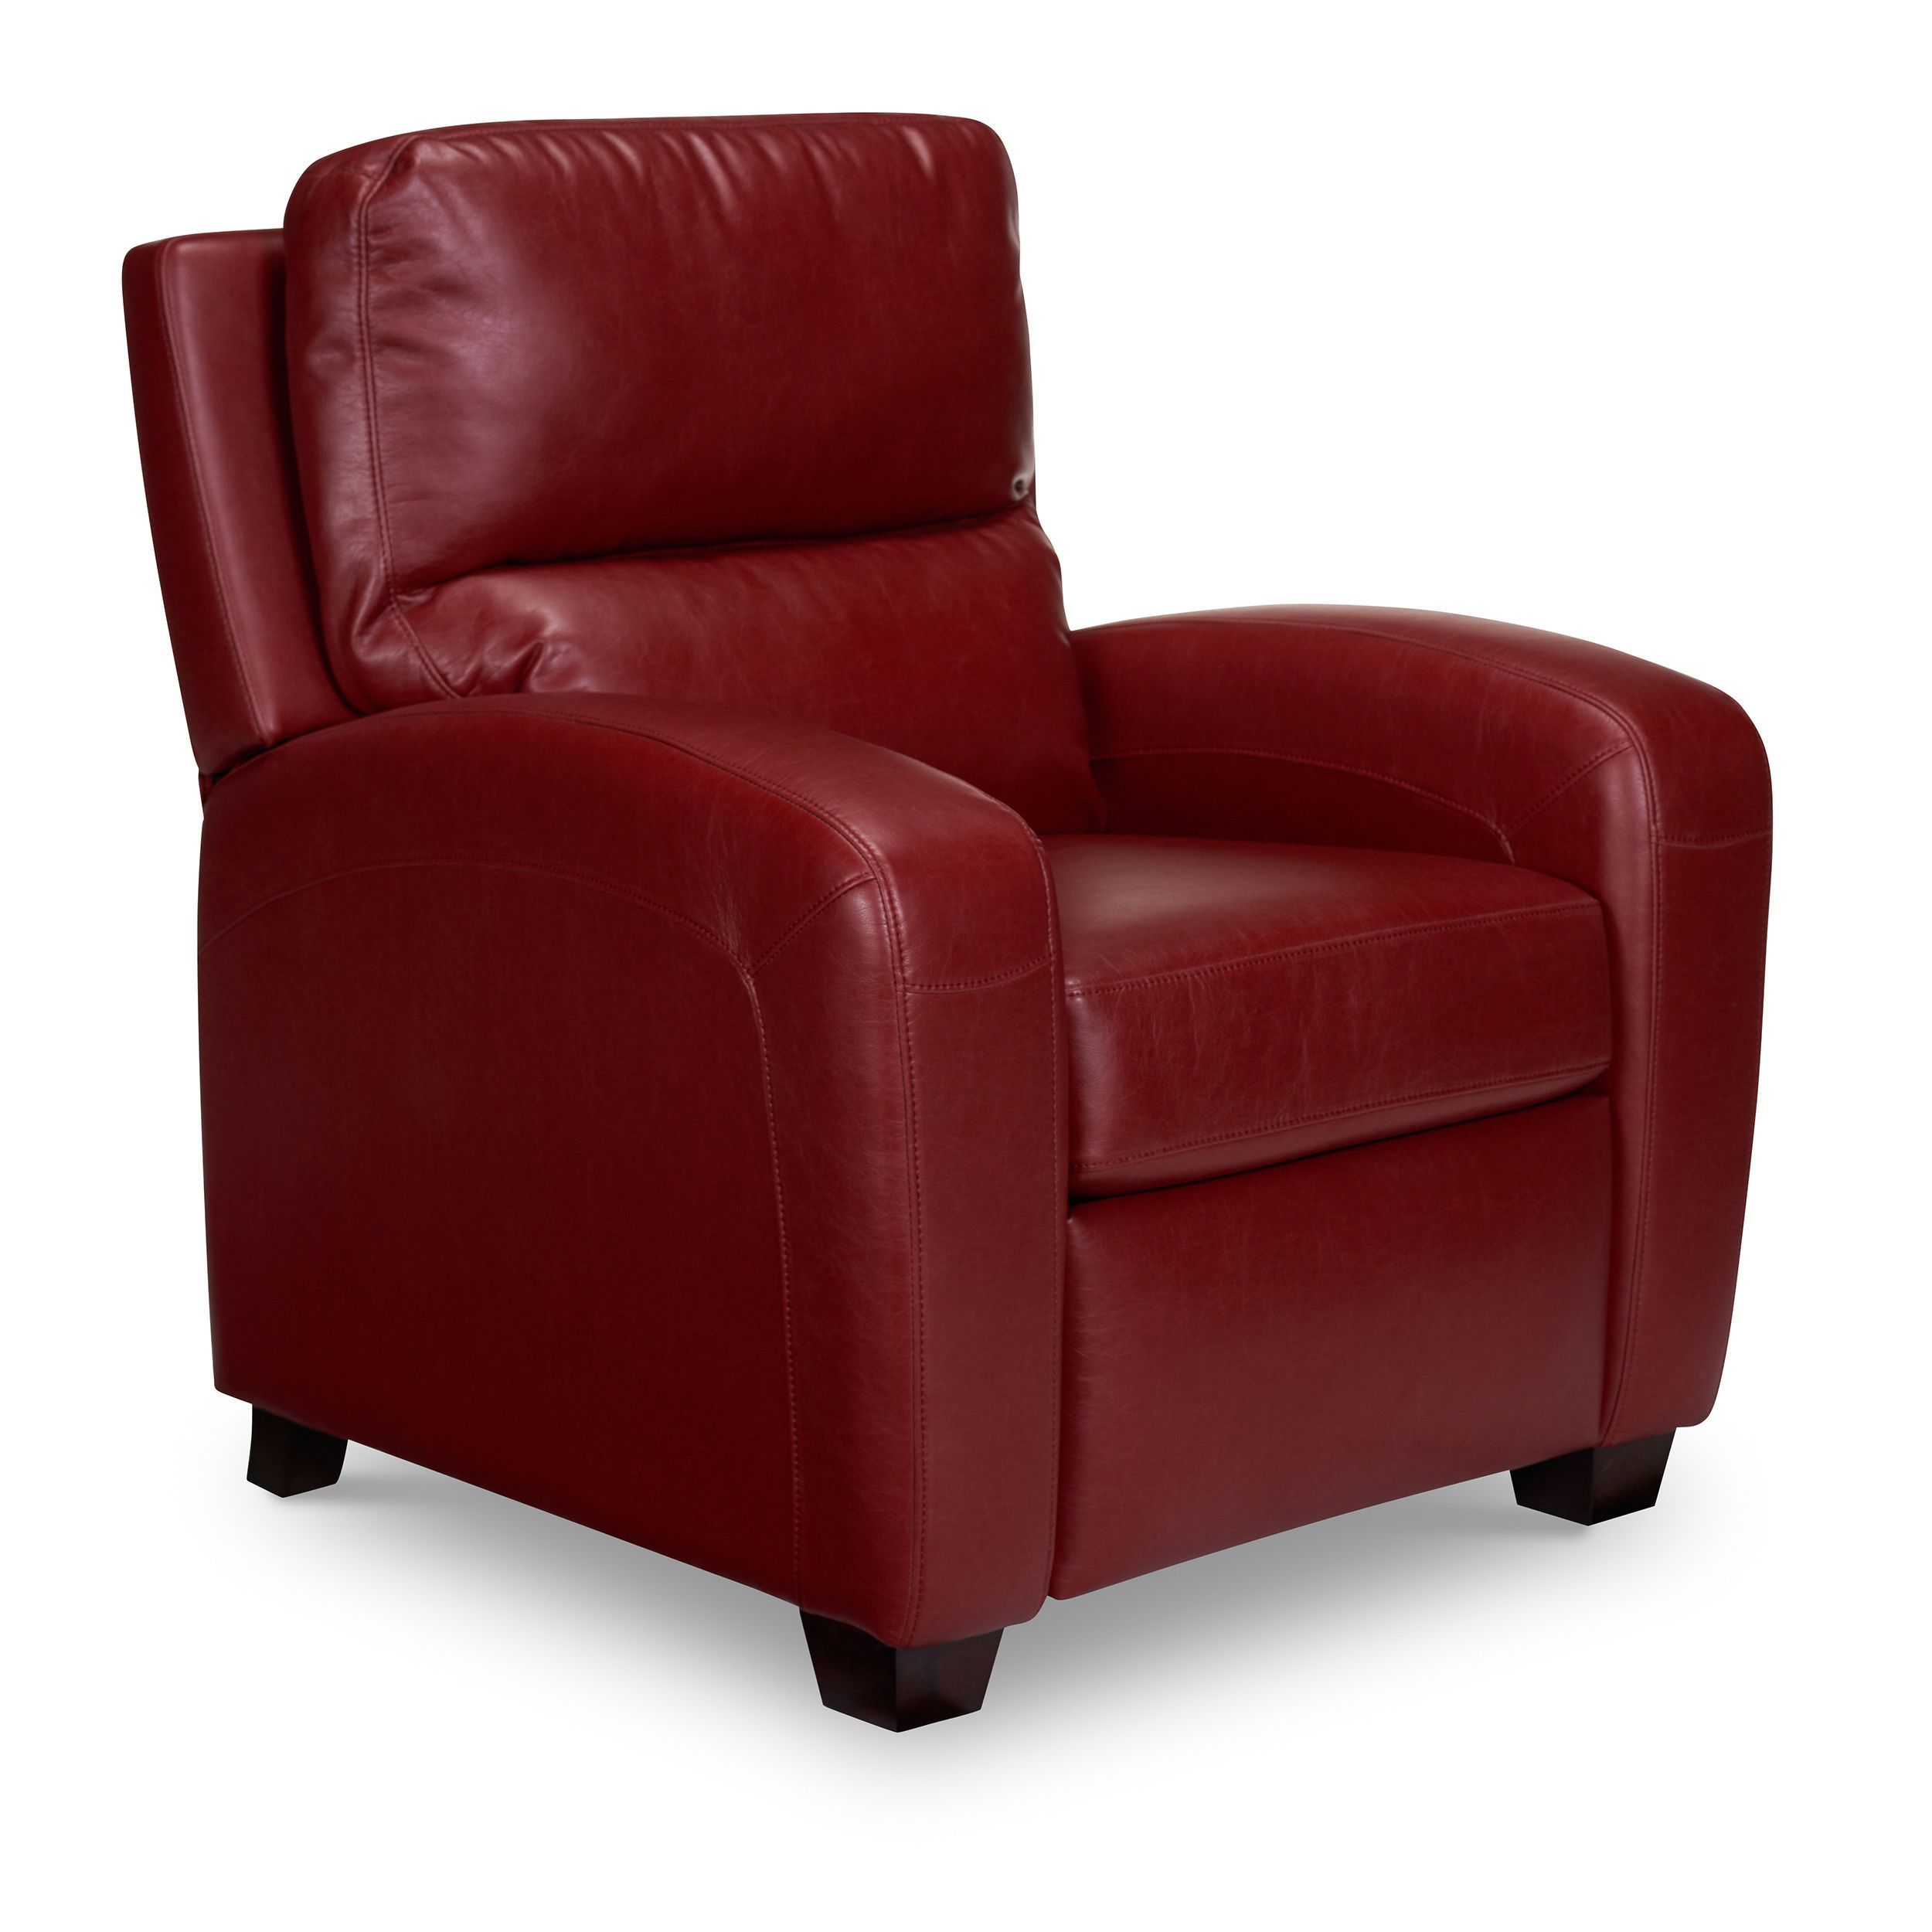 Opulence Home Brice Club Recliner (Harlee Dark Red) (Faux Leather)